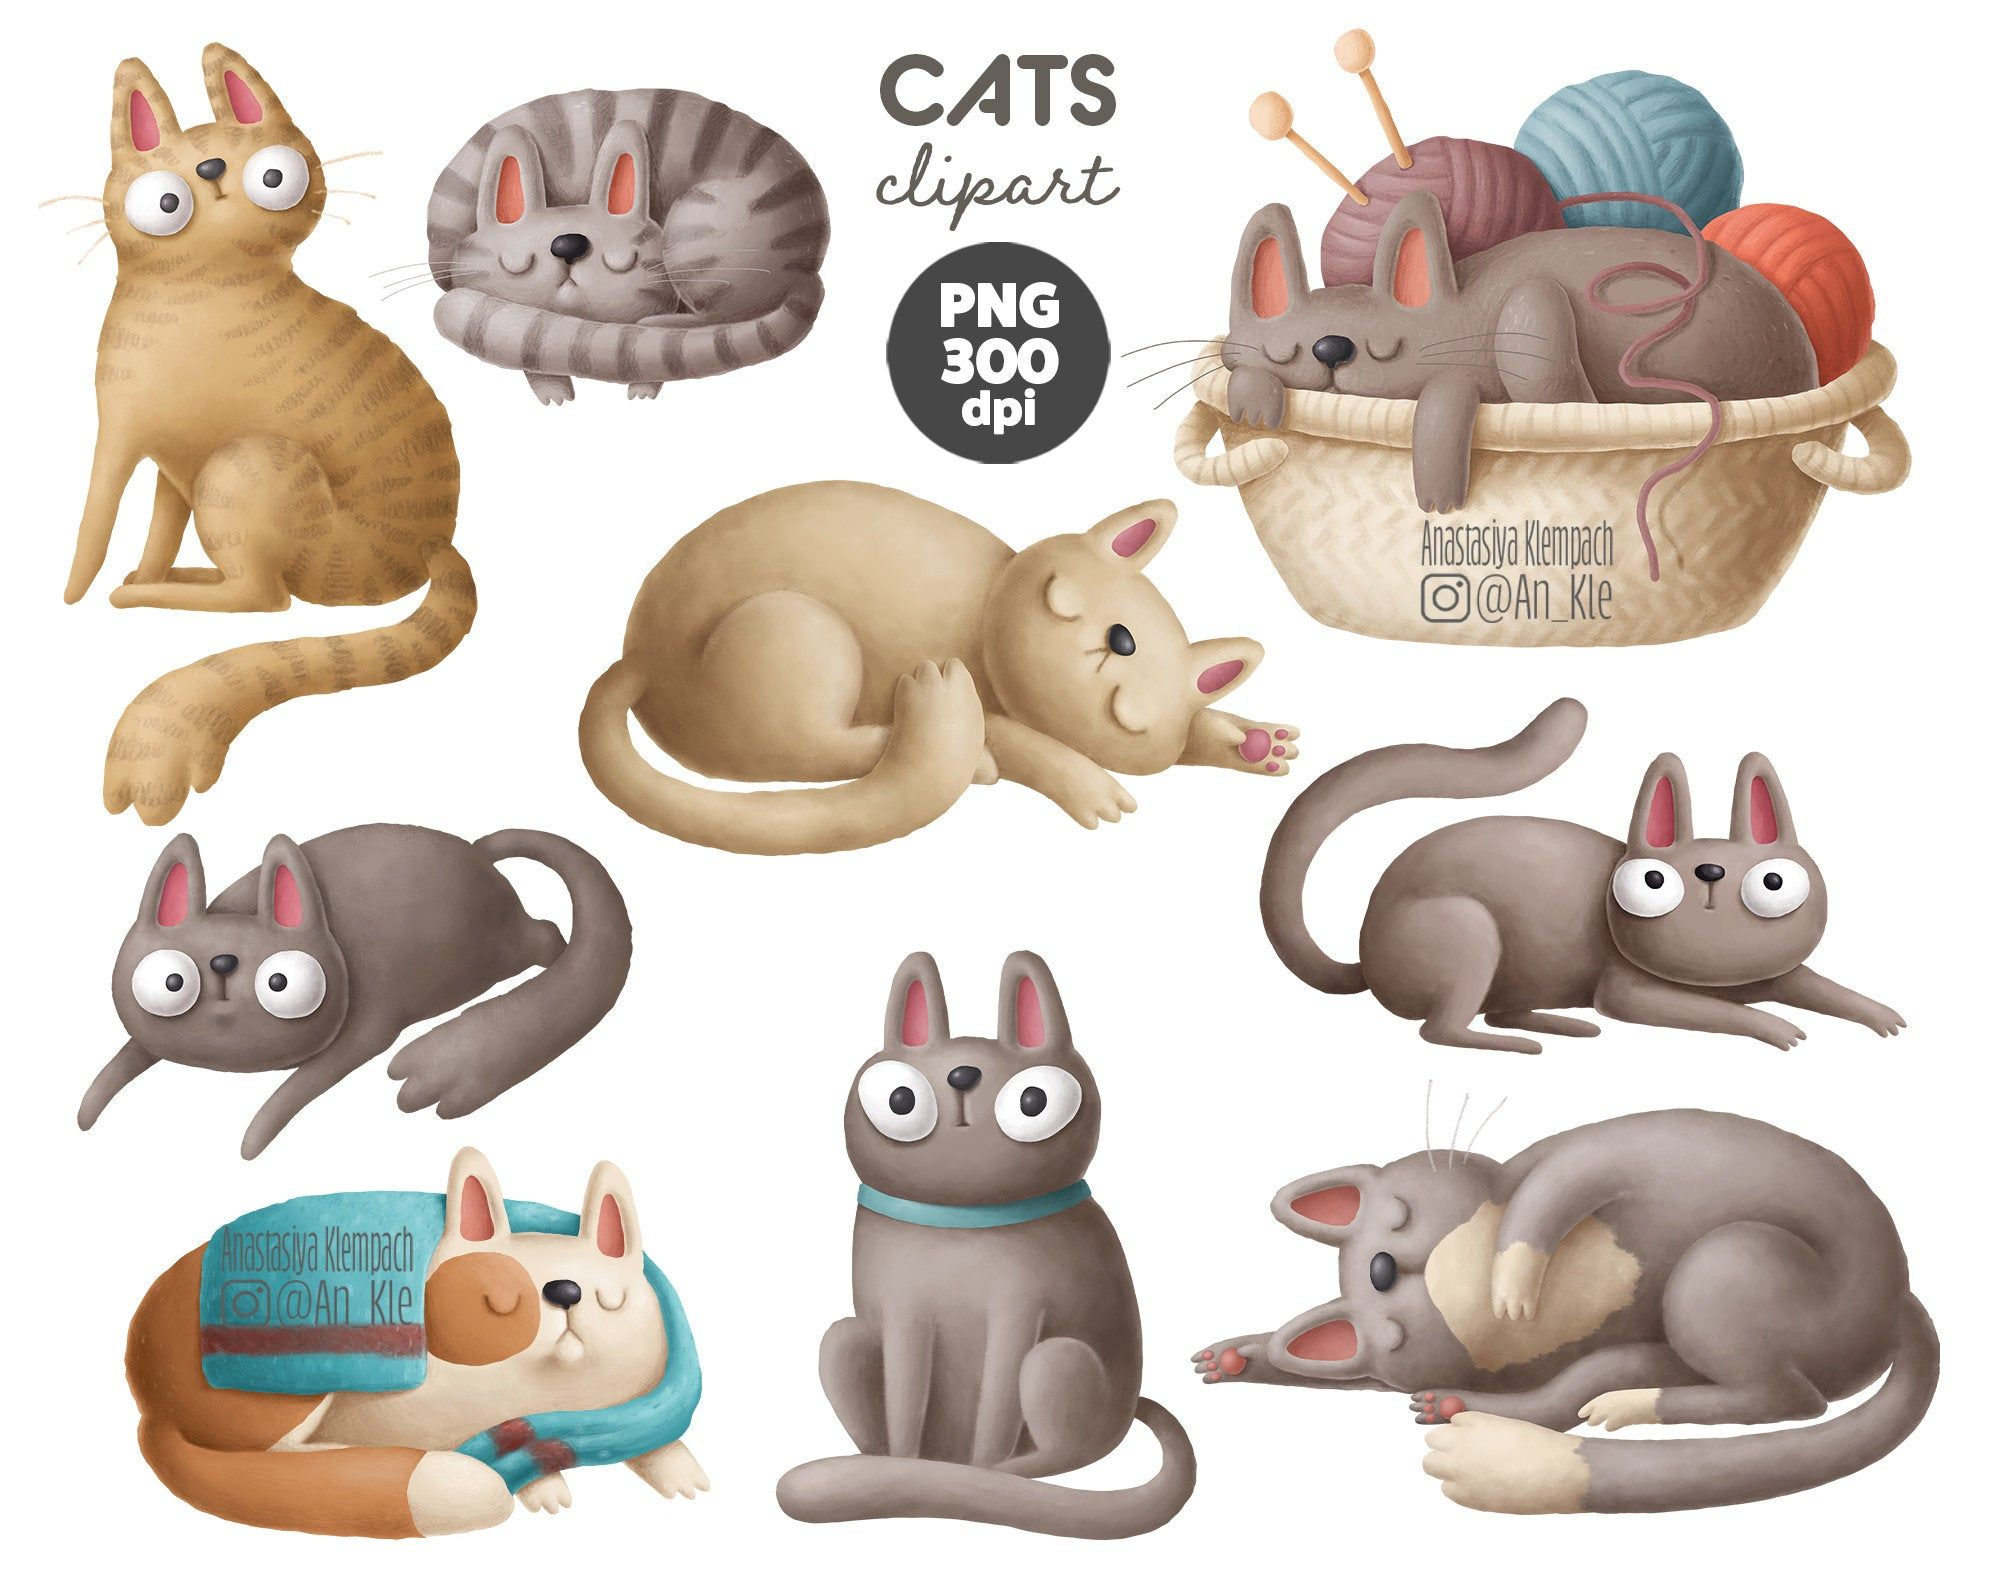 2020 Dog And Cat Christmas Commercial Cute funny cats clipart collection, instant digital downloadable